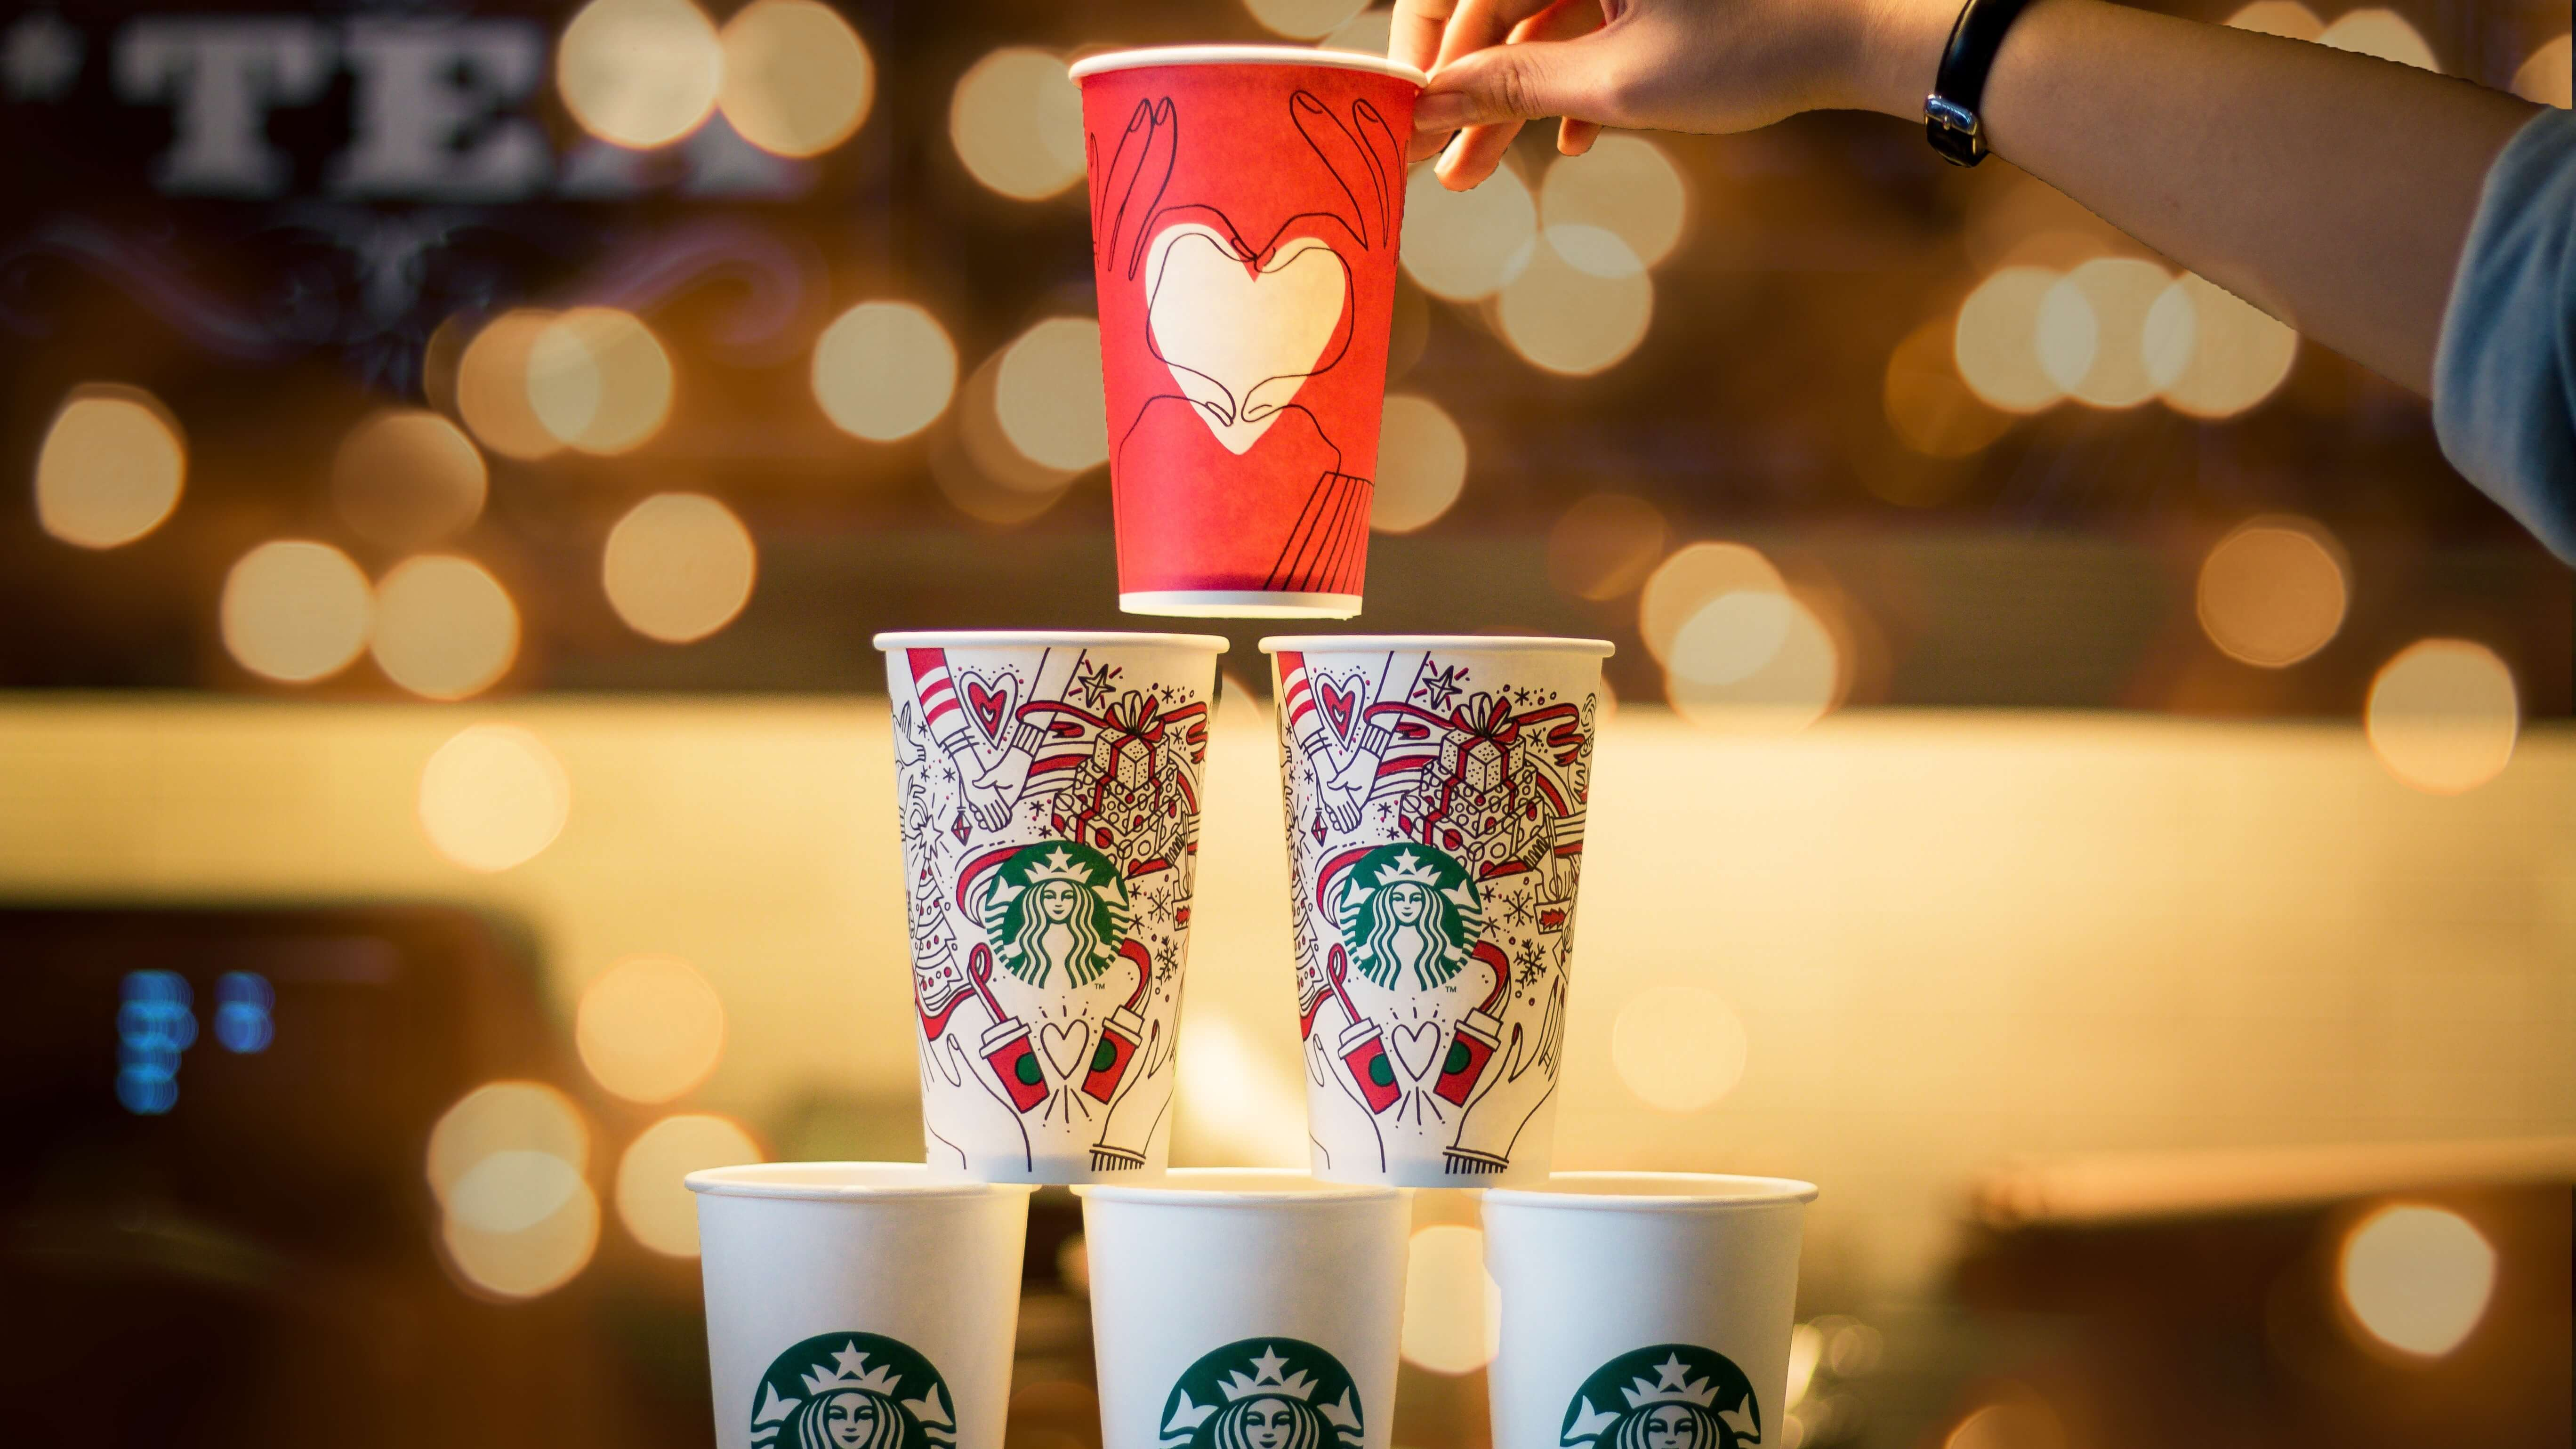 Starbucks Proves That Single-Use Coffee Cups Can Be Recycled